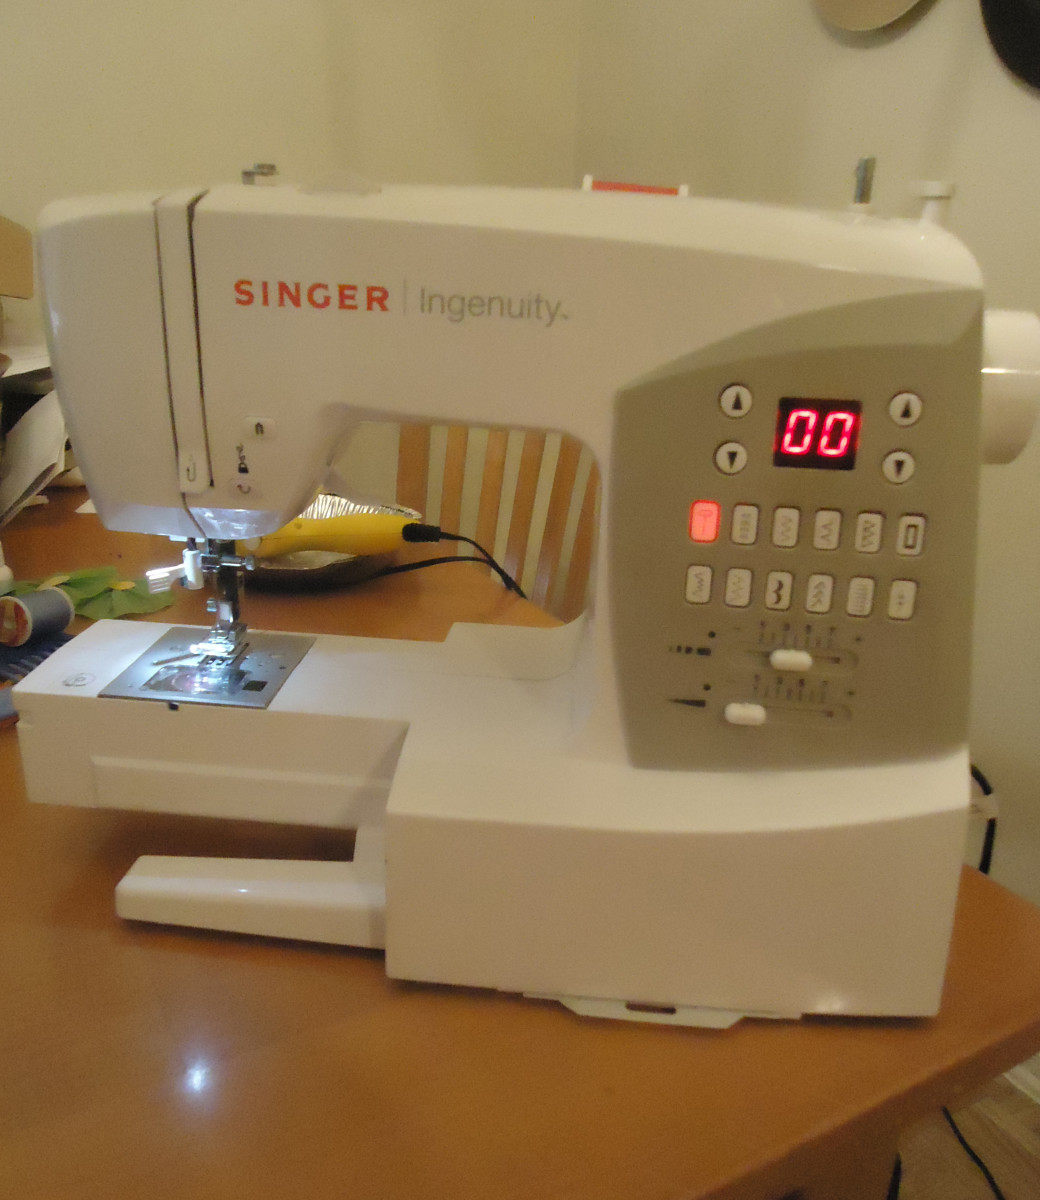 Singer Ingenuity Sewing Machine